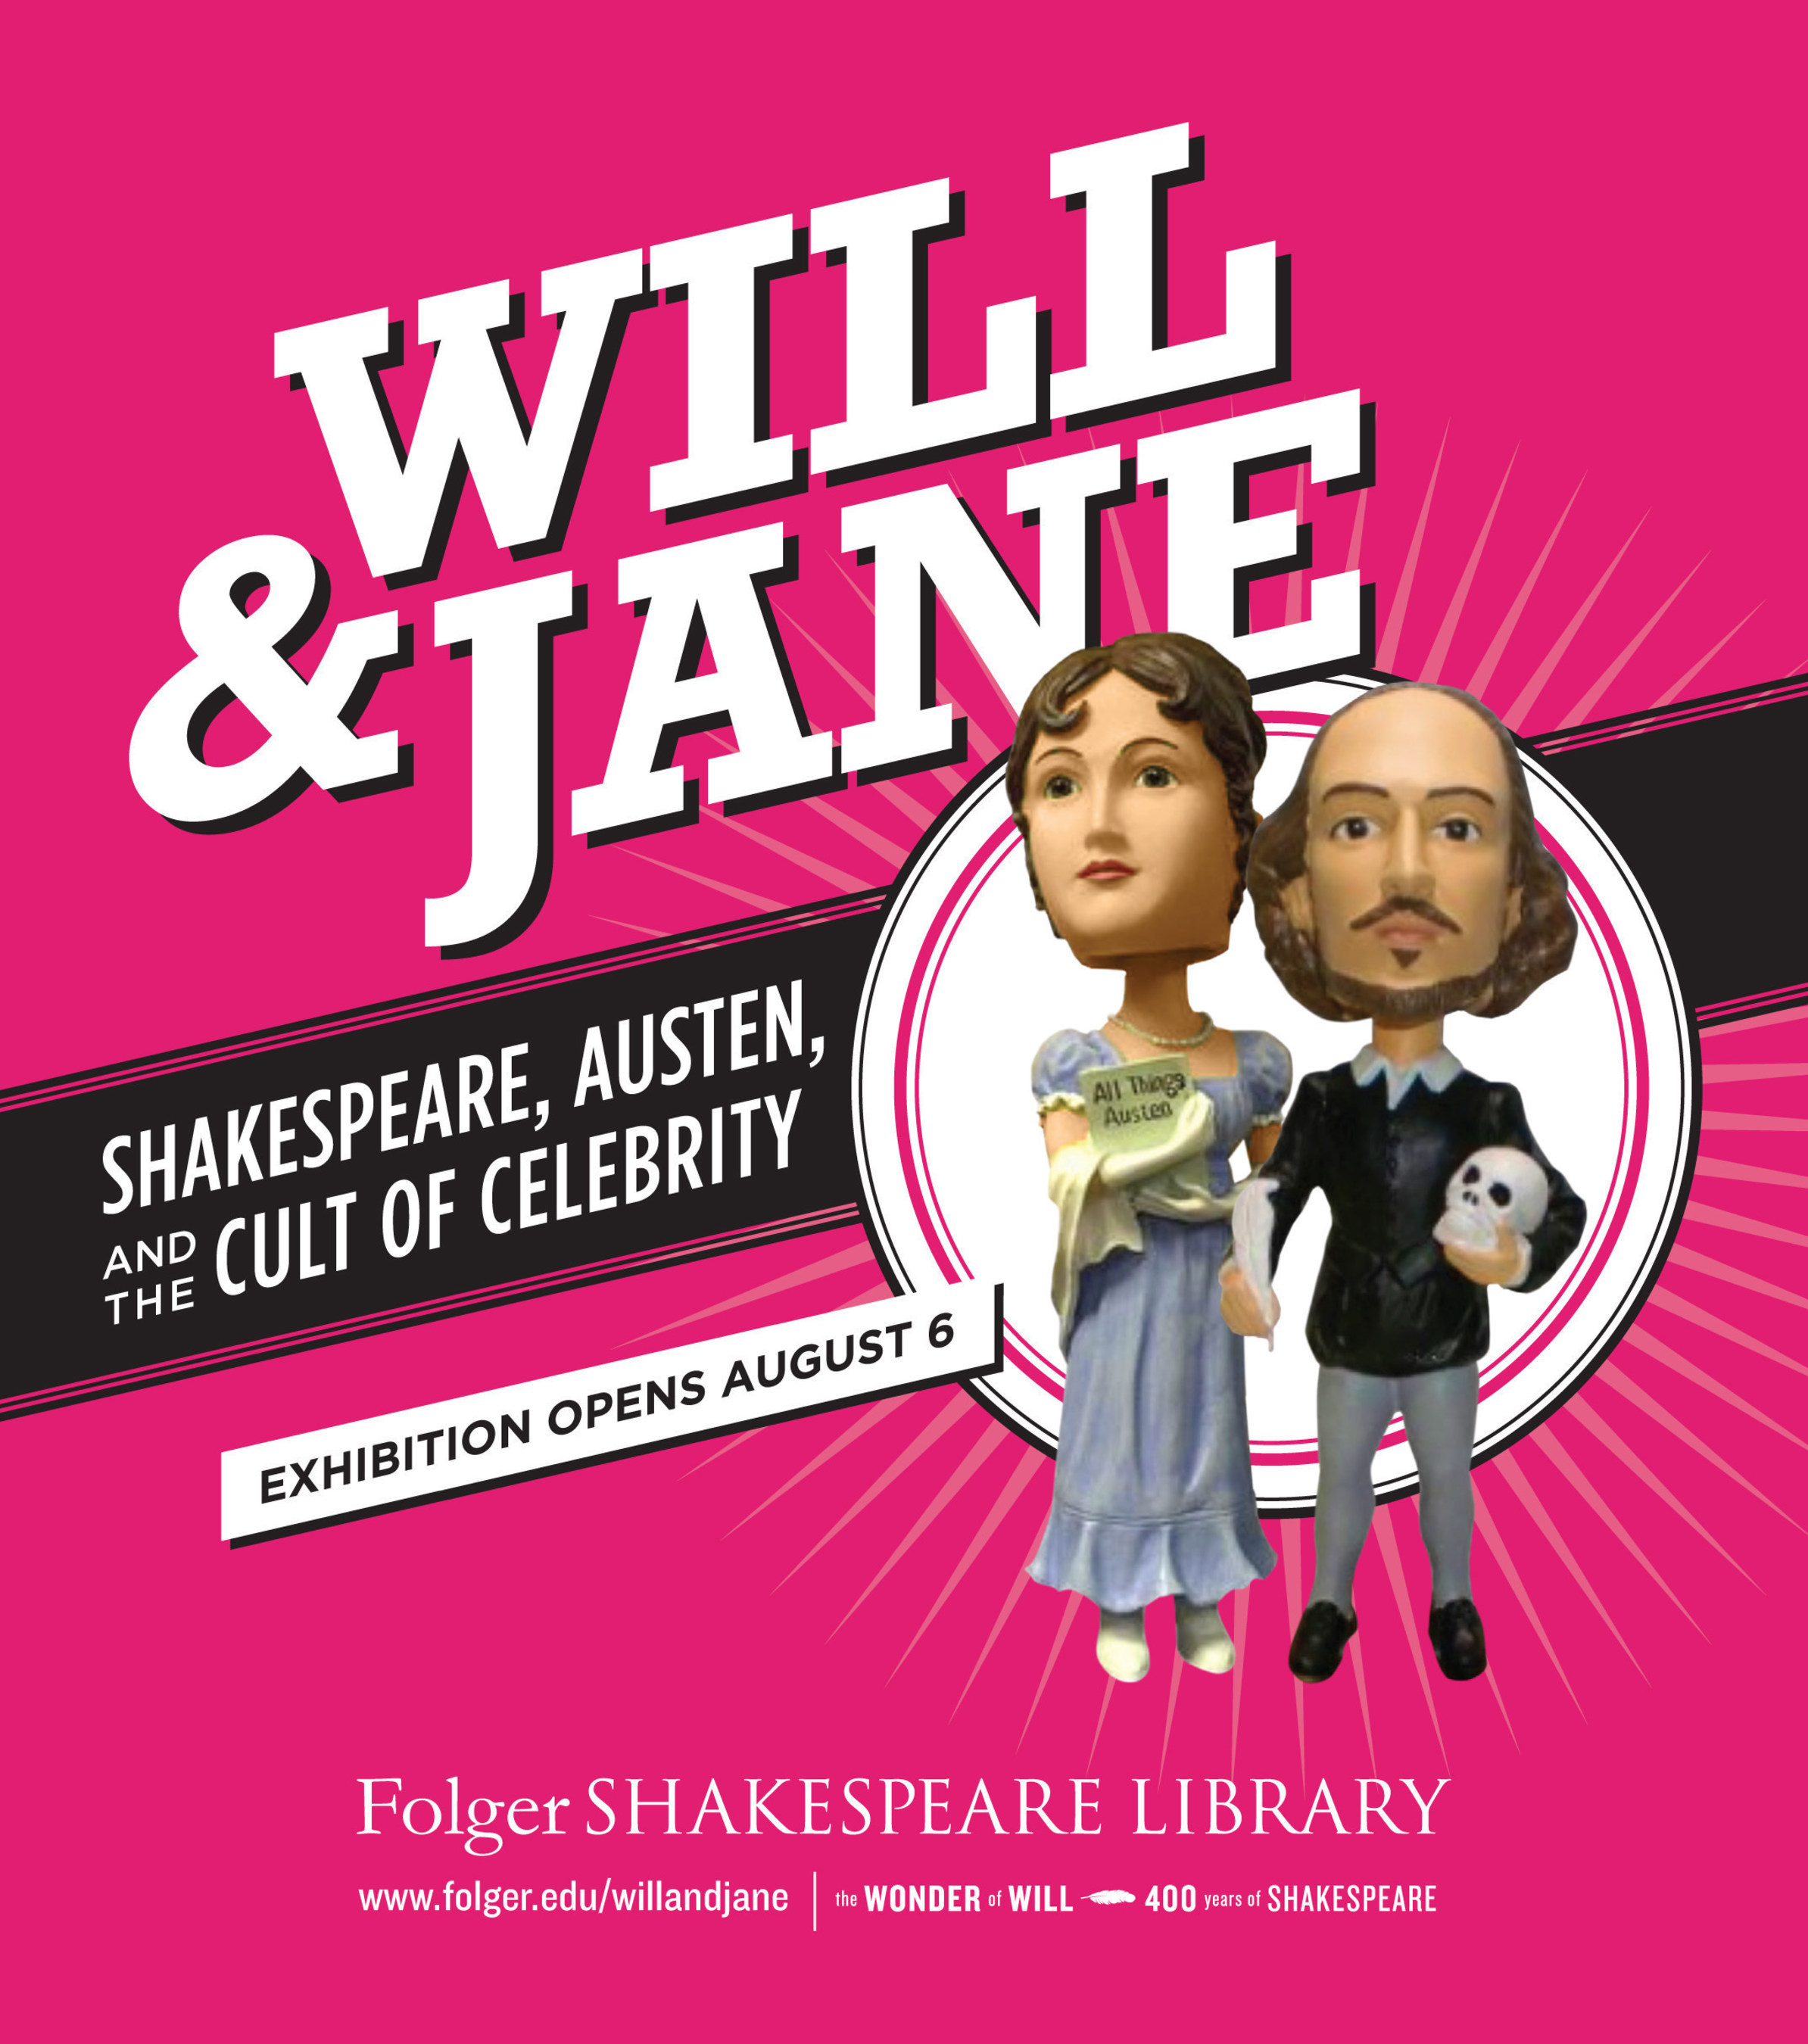 Will & Jane: Shakespeare, Austen, and the Cult of Celebrity, on exhibit at the Folger Shakespeare Library August 6 - November 6.